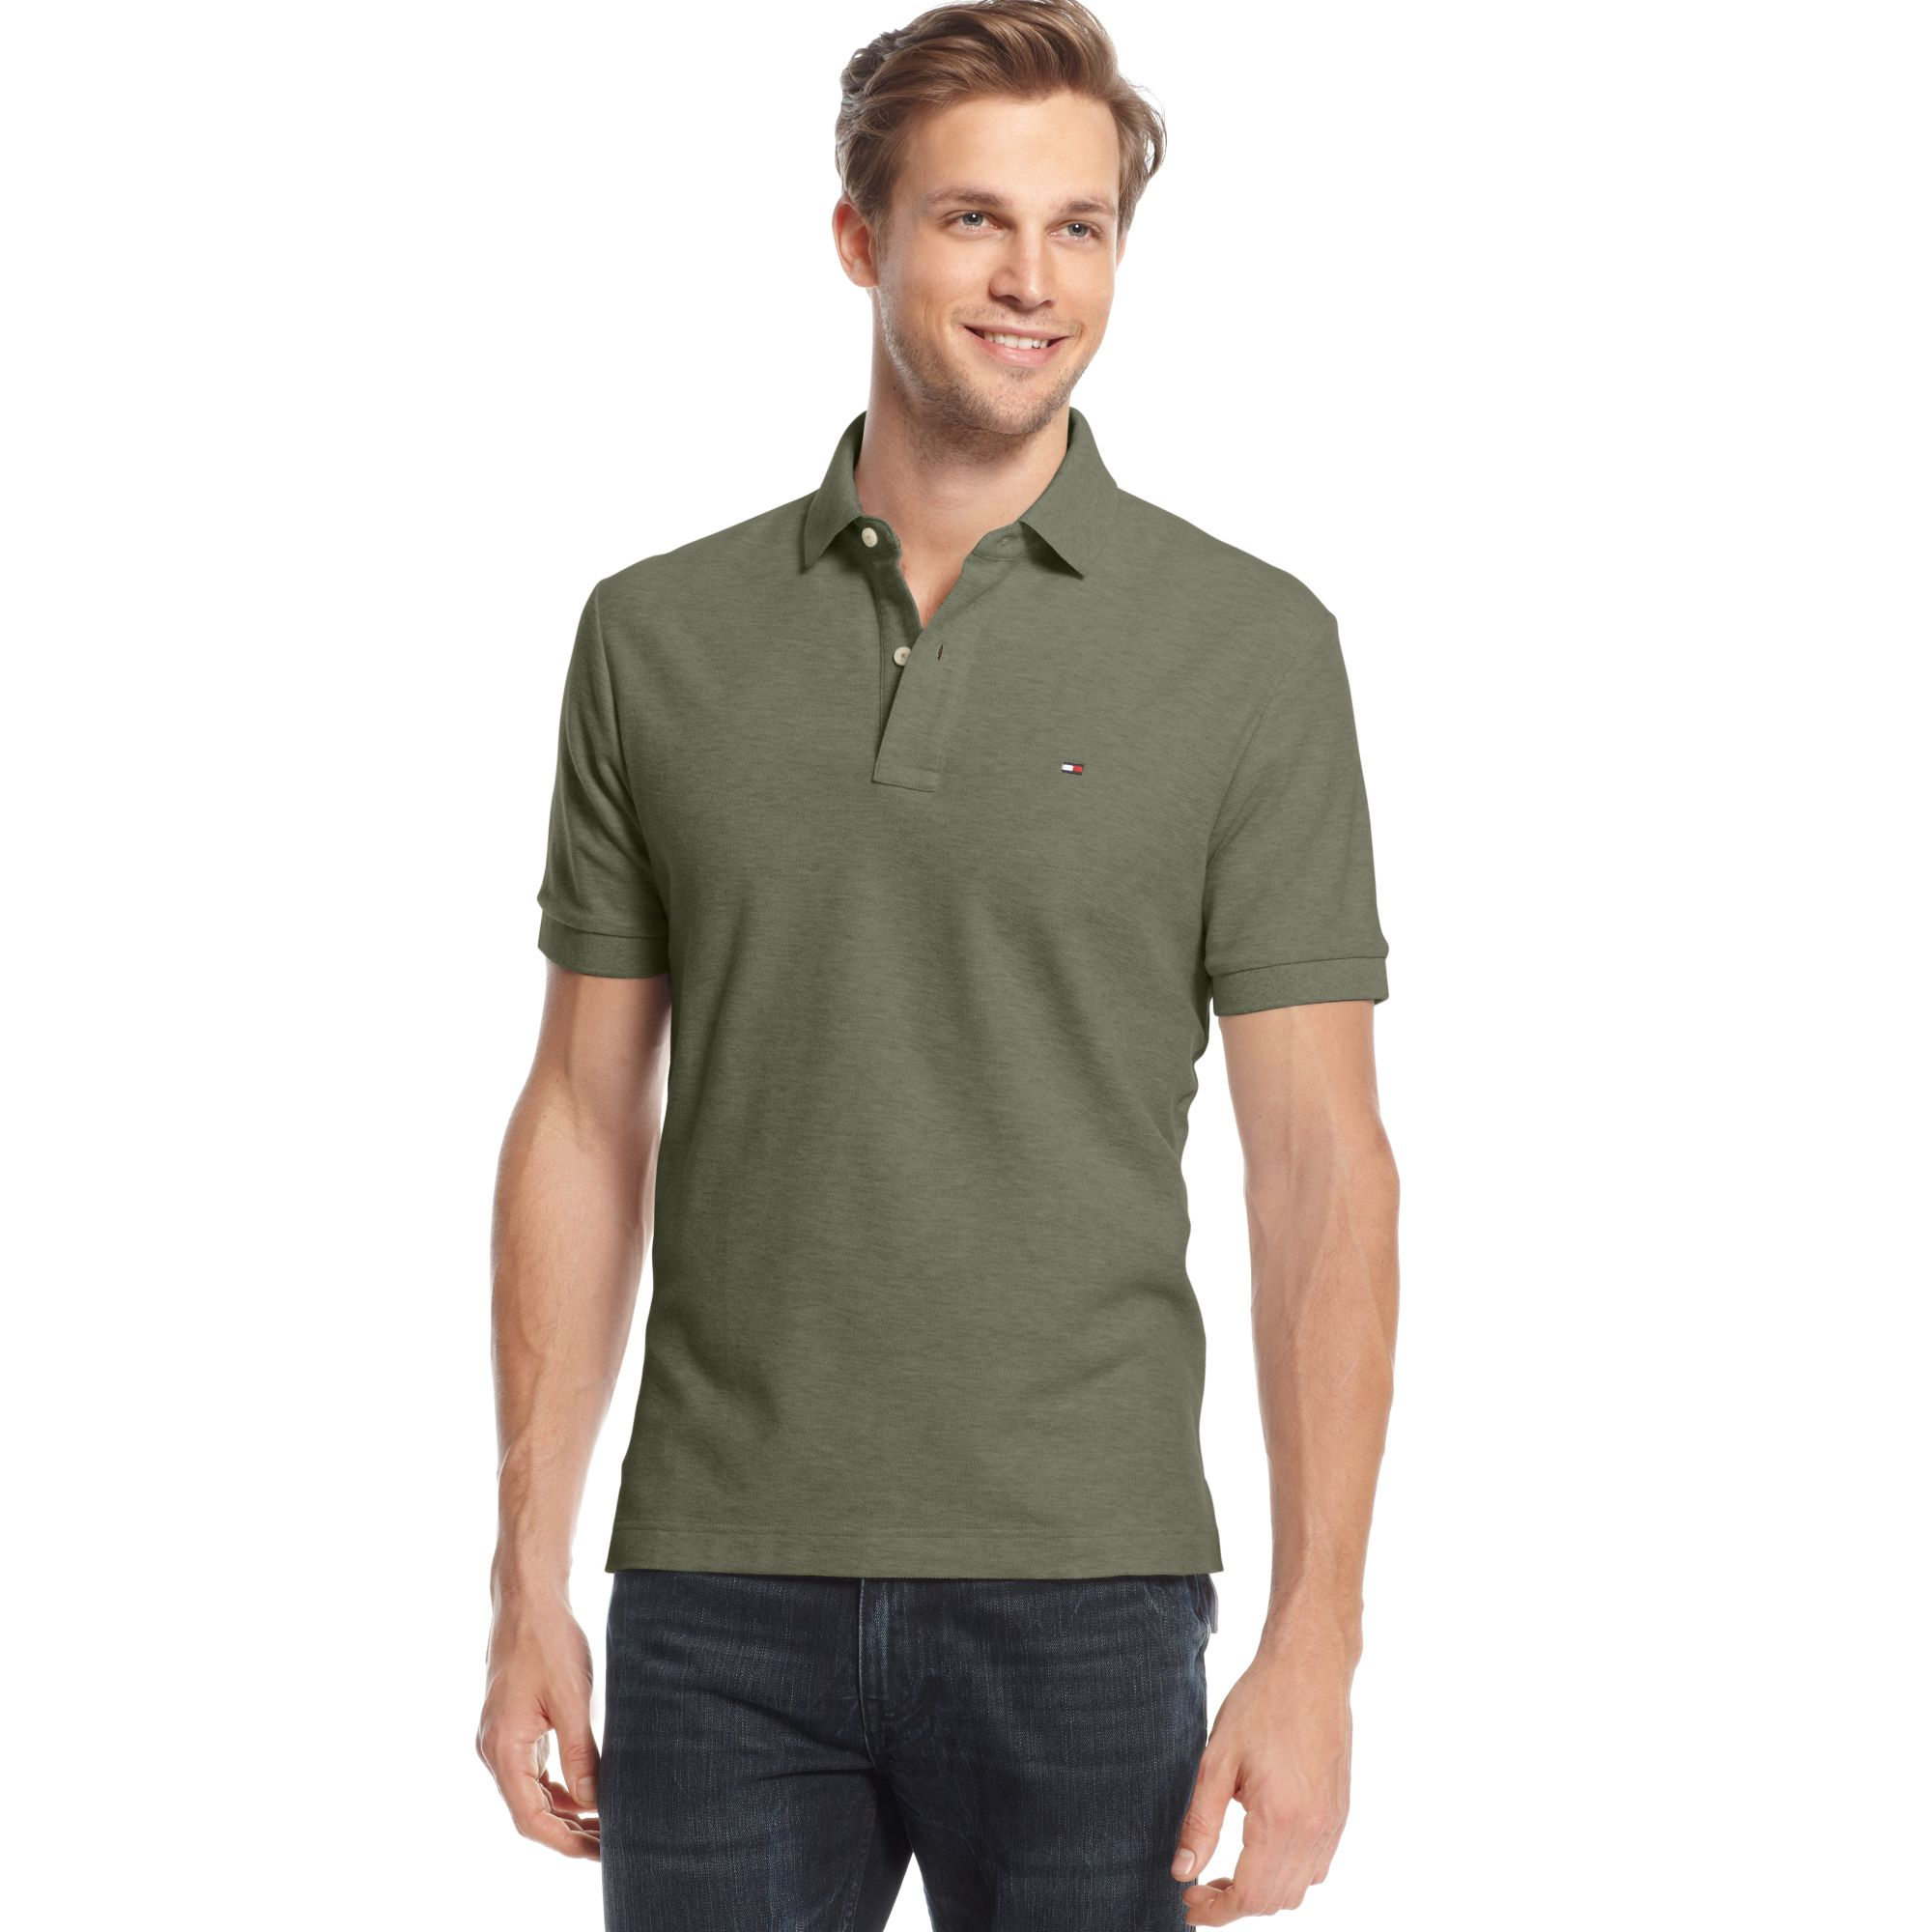 tommy hilfiger ivy polo shirt in green for men lichen green lyst. Black Bedroom Furniture Sets. Home Design Ideas